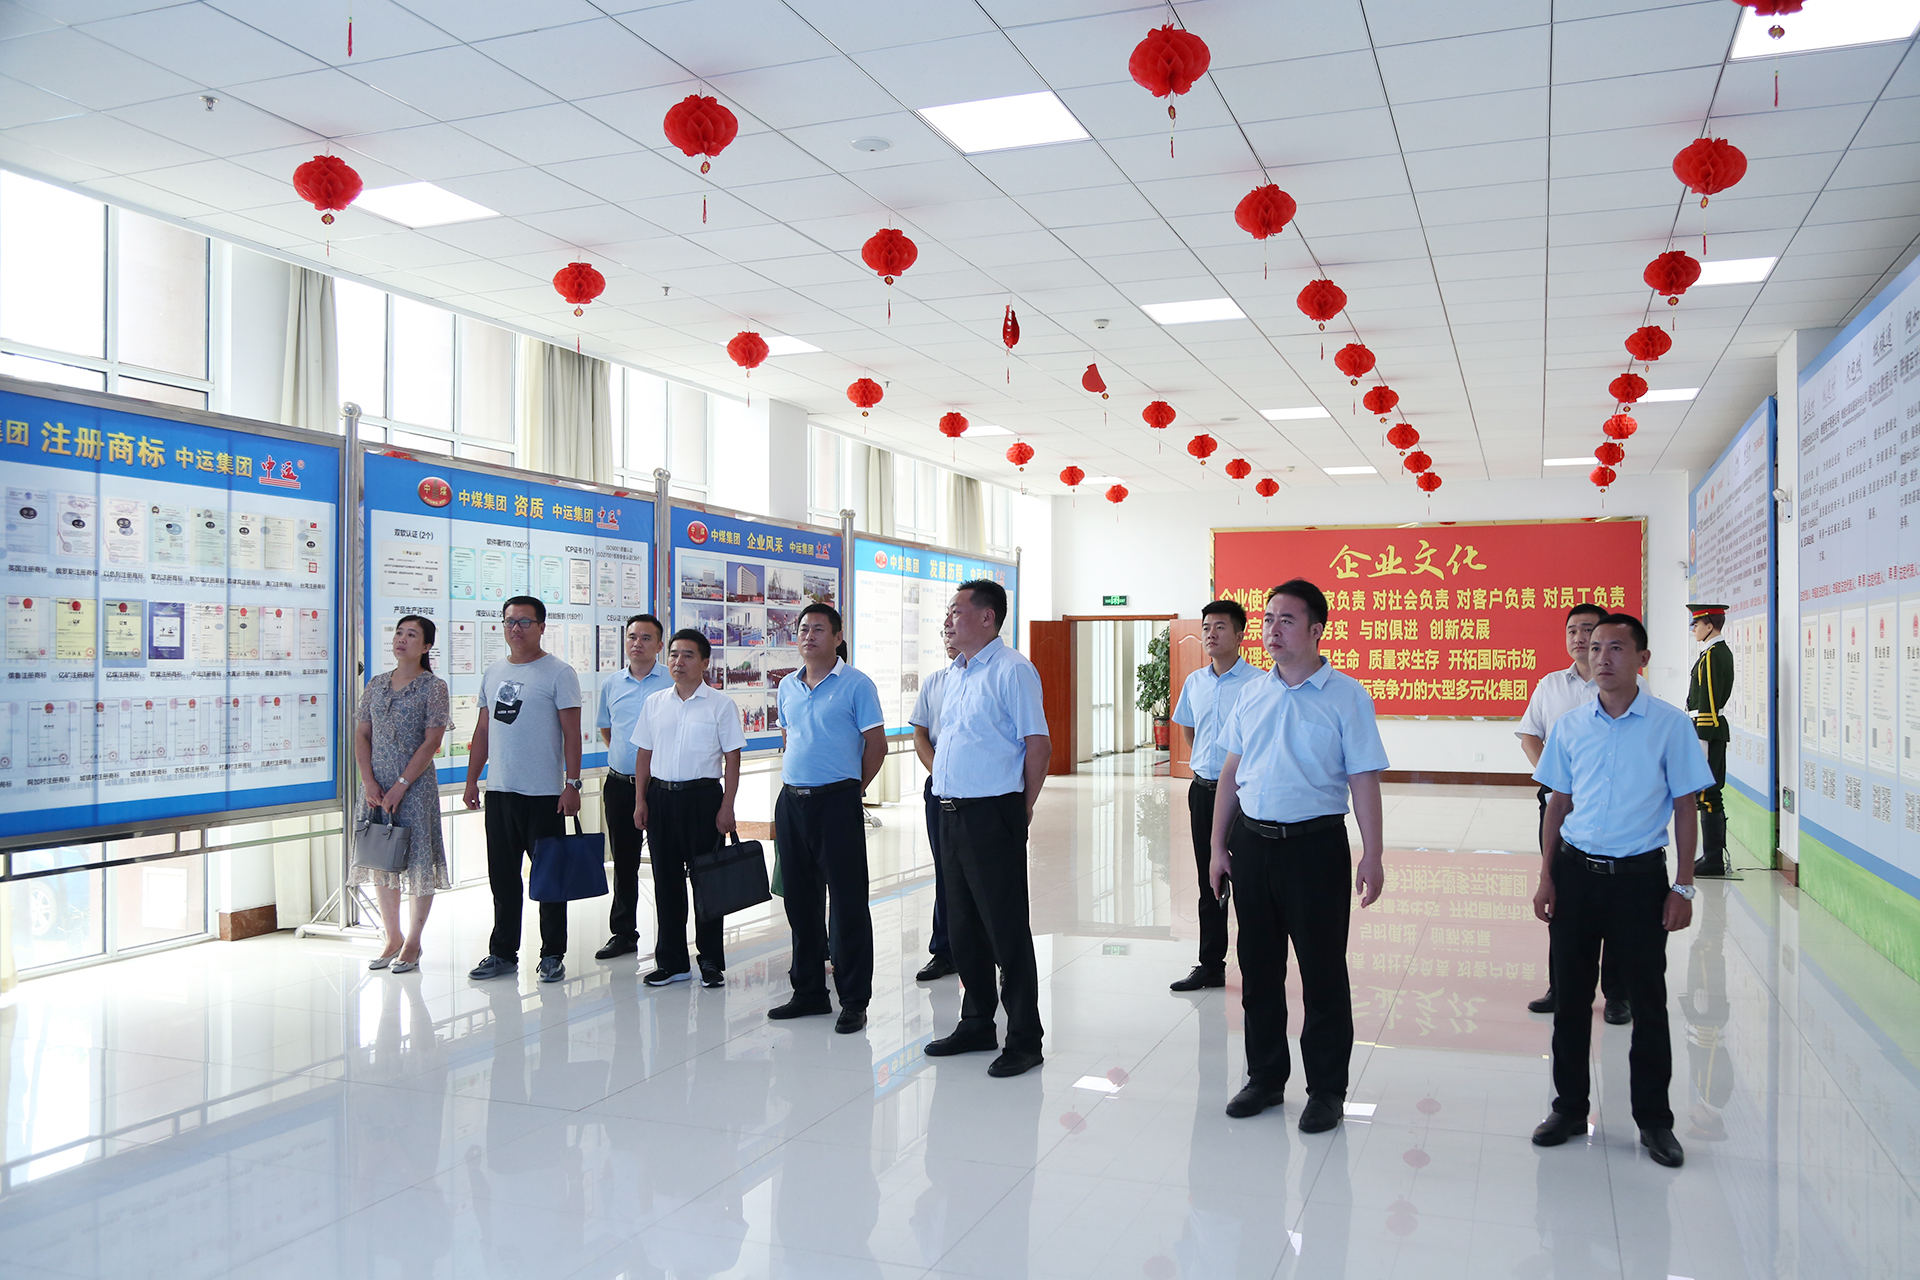 Warmly Welcome The Leaders Of The Jining Labor And Personnel Dispute Arbitration Institute To Visit China Coal Group